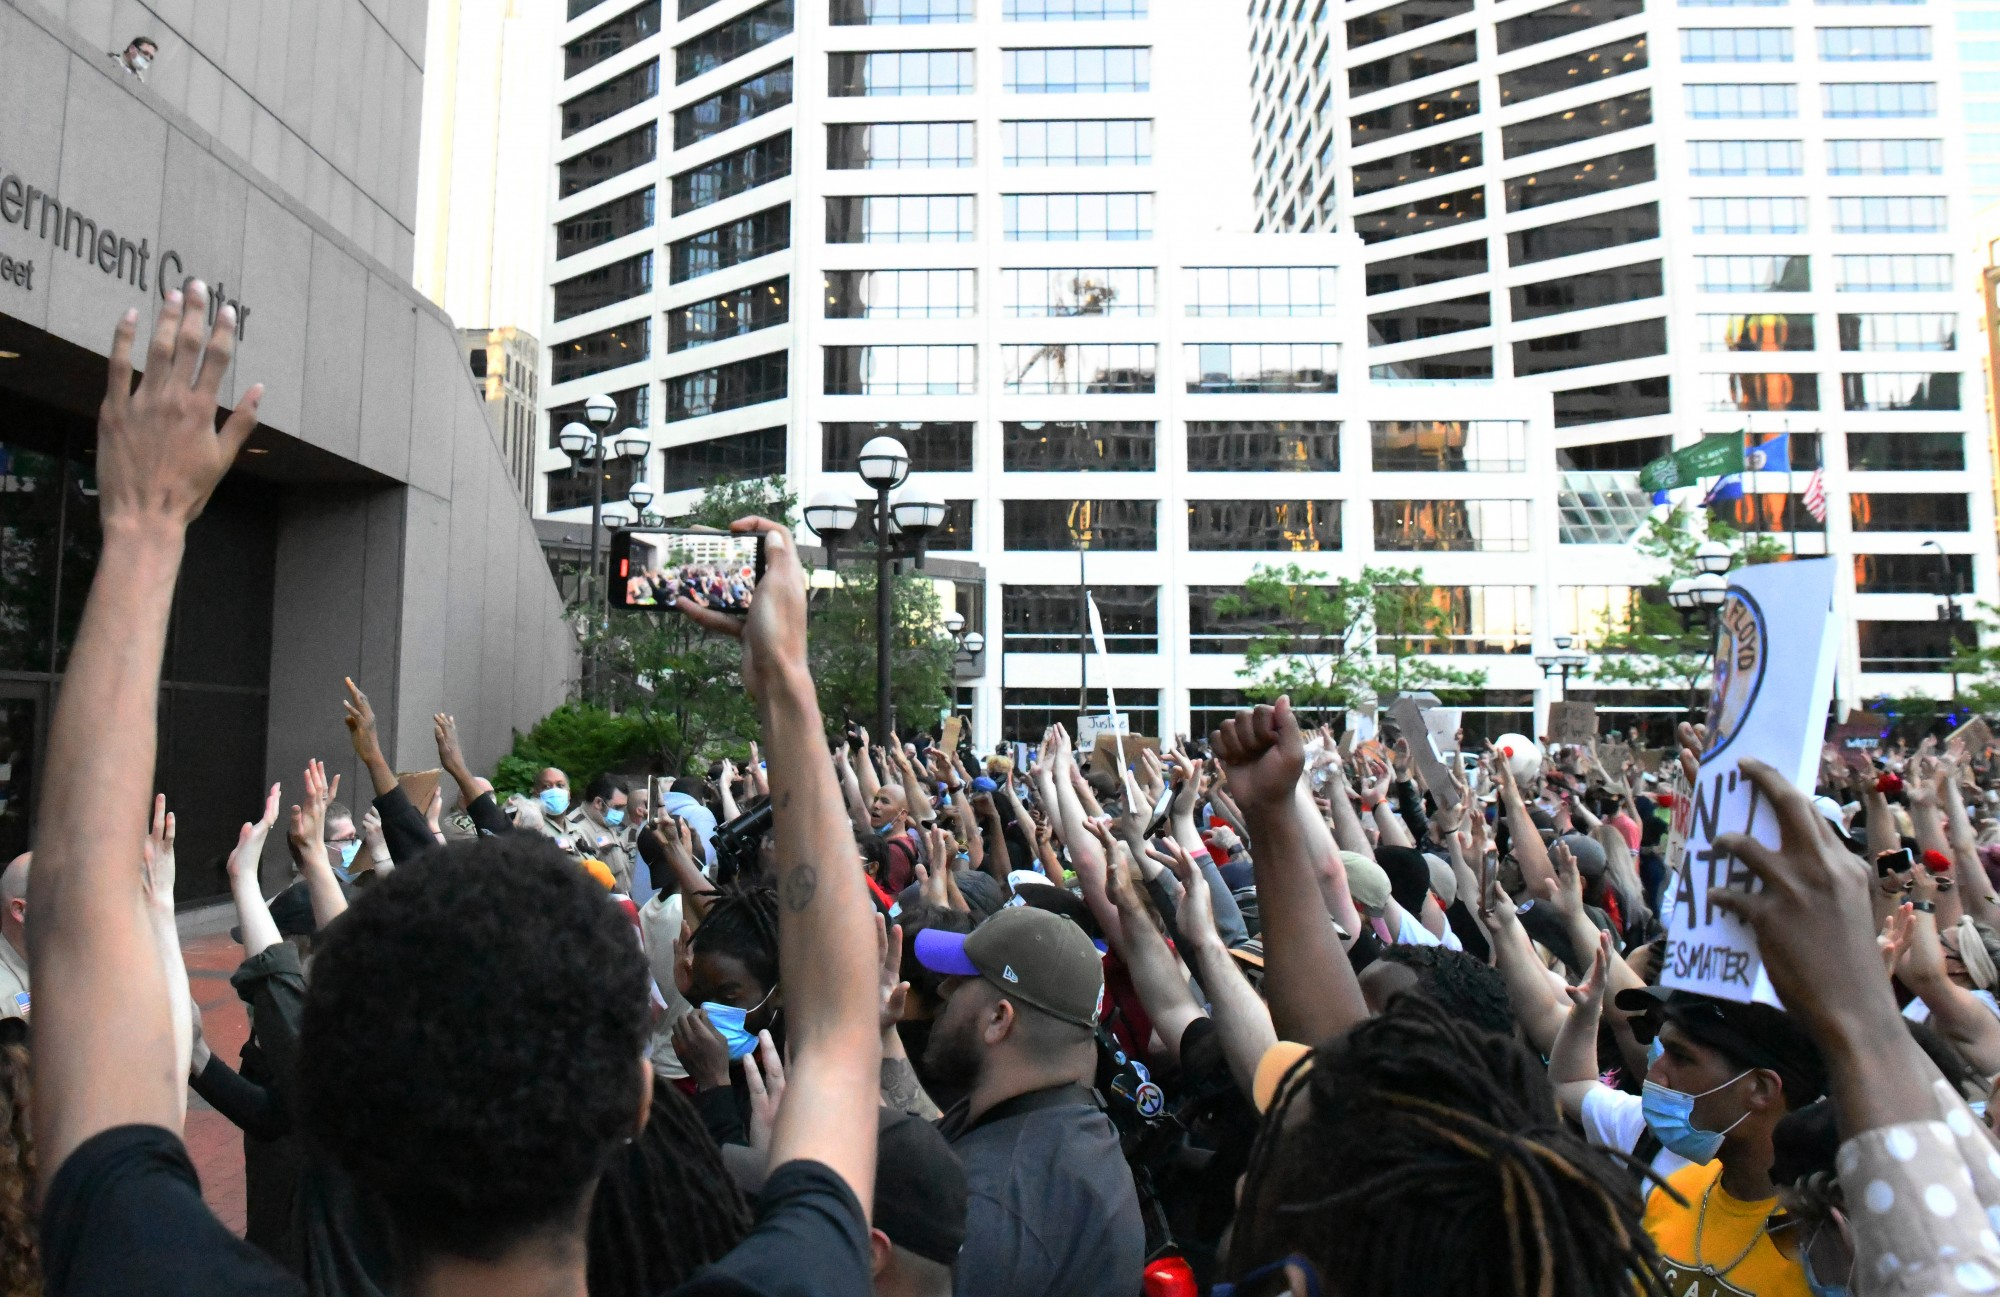 """Demonstrators chant """"Hands up, don't shoot"""" at the protest against police brutality in front of the Hennepin County Government Center in Minneapolis on Thursday, May 28."""